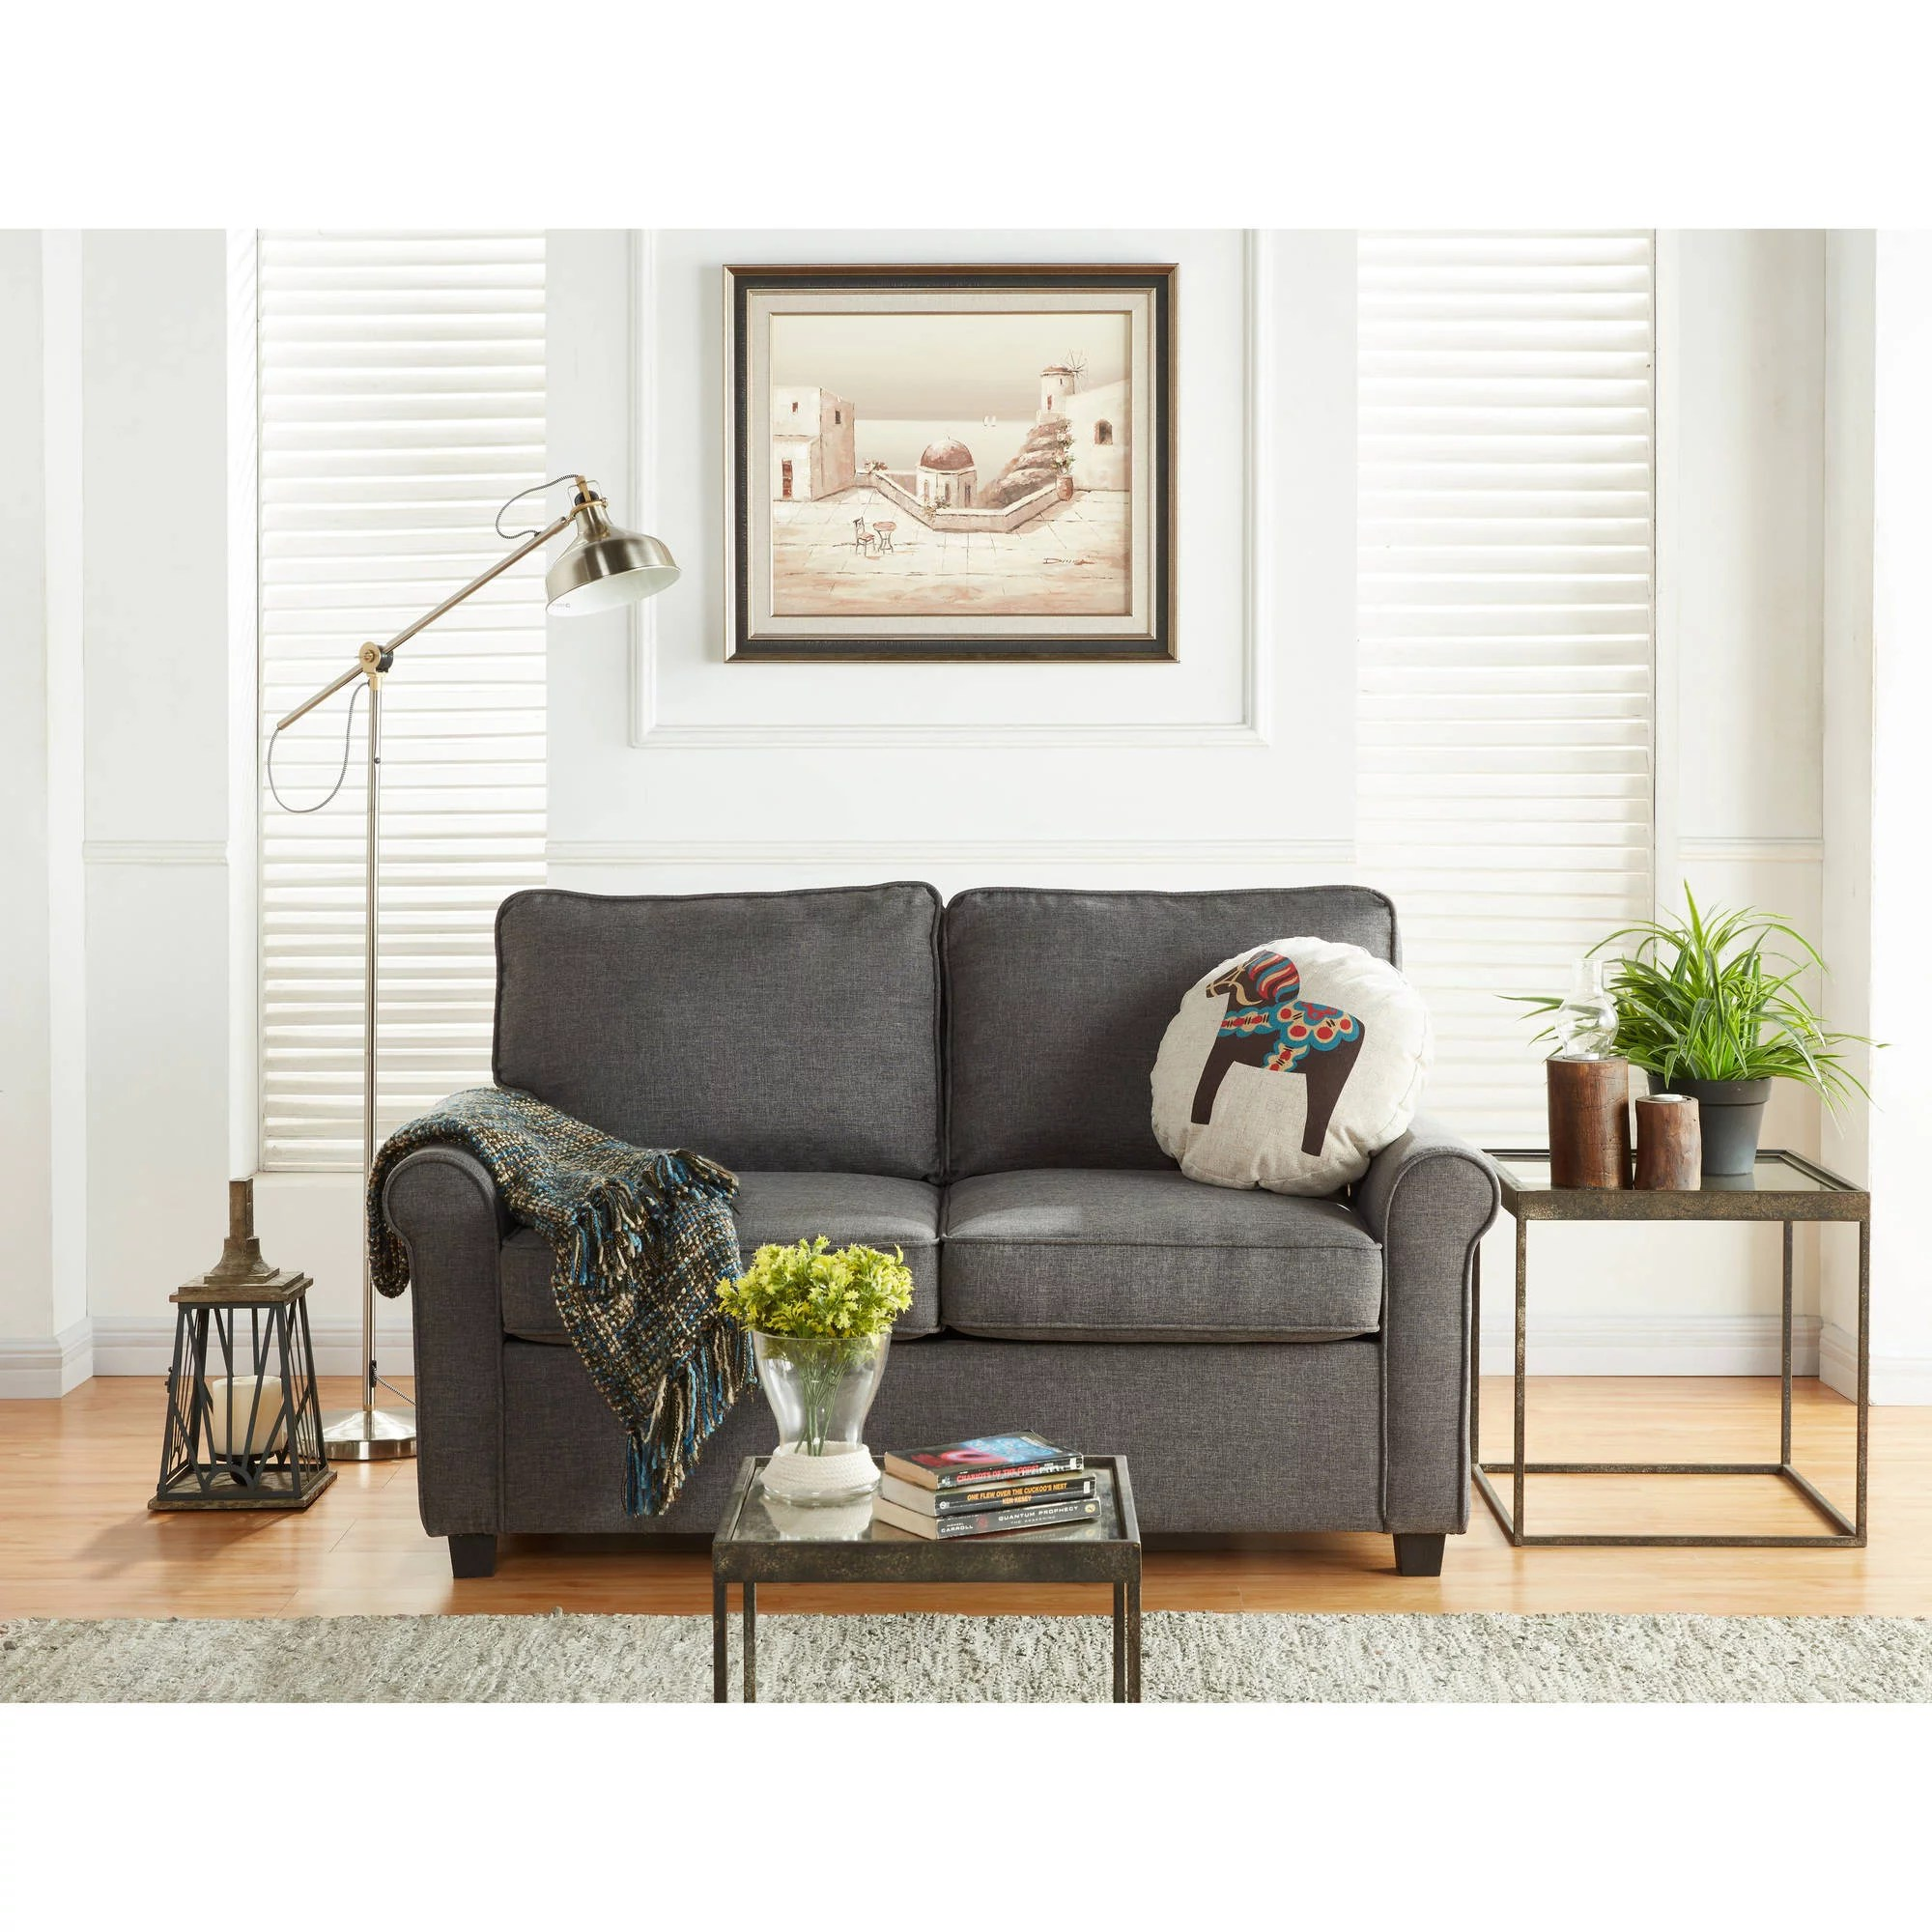 mainstays sofa sleeper with memory foam rooms to go cindy crawford 57 loveseat mattress grey walmart com